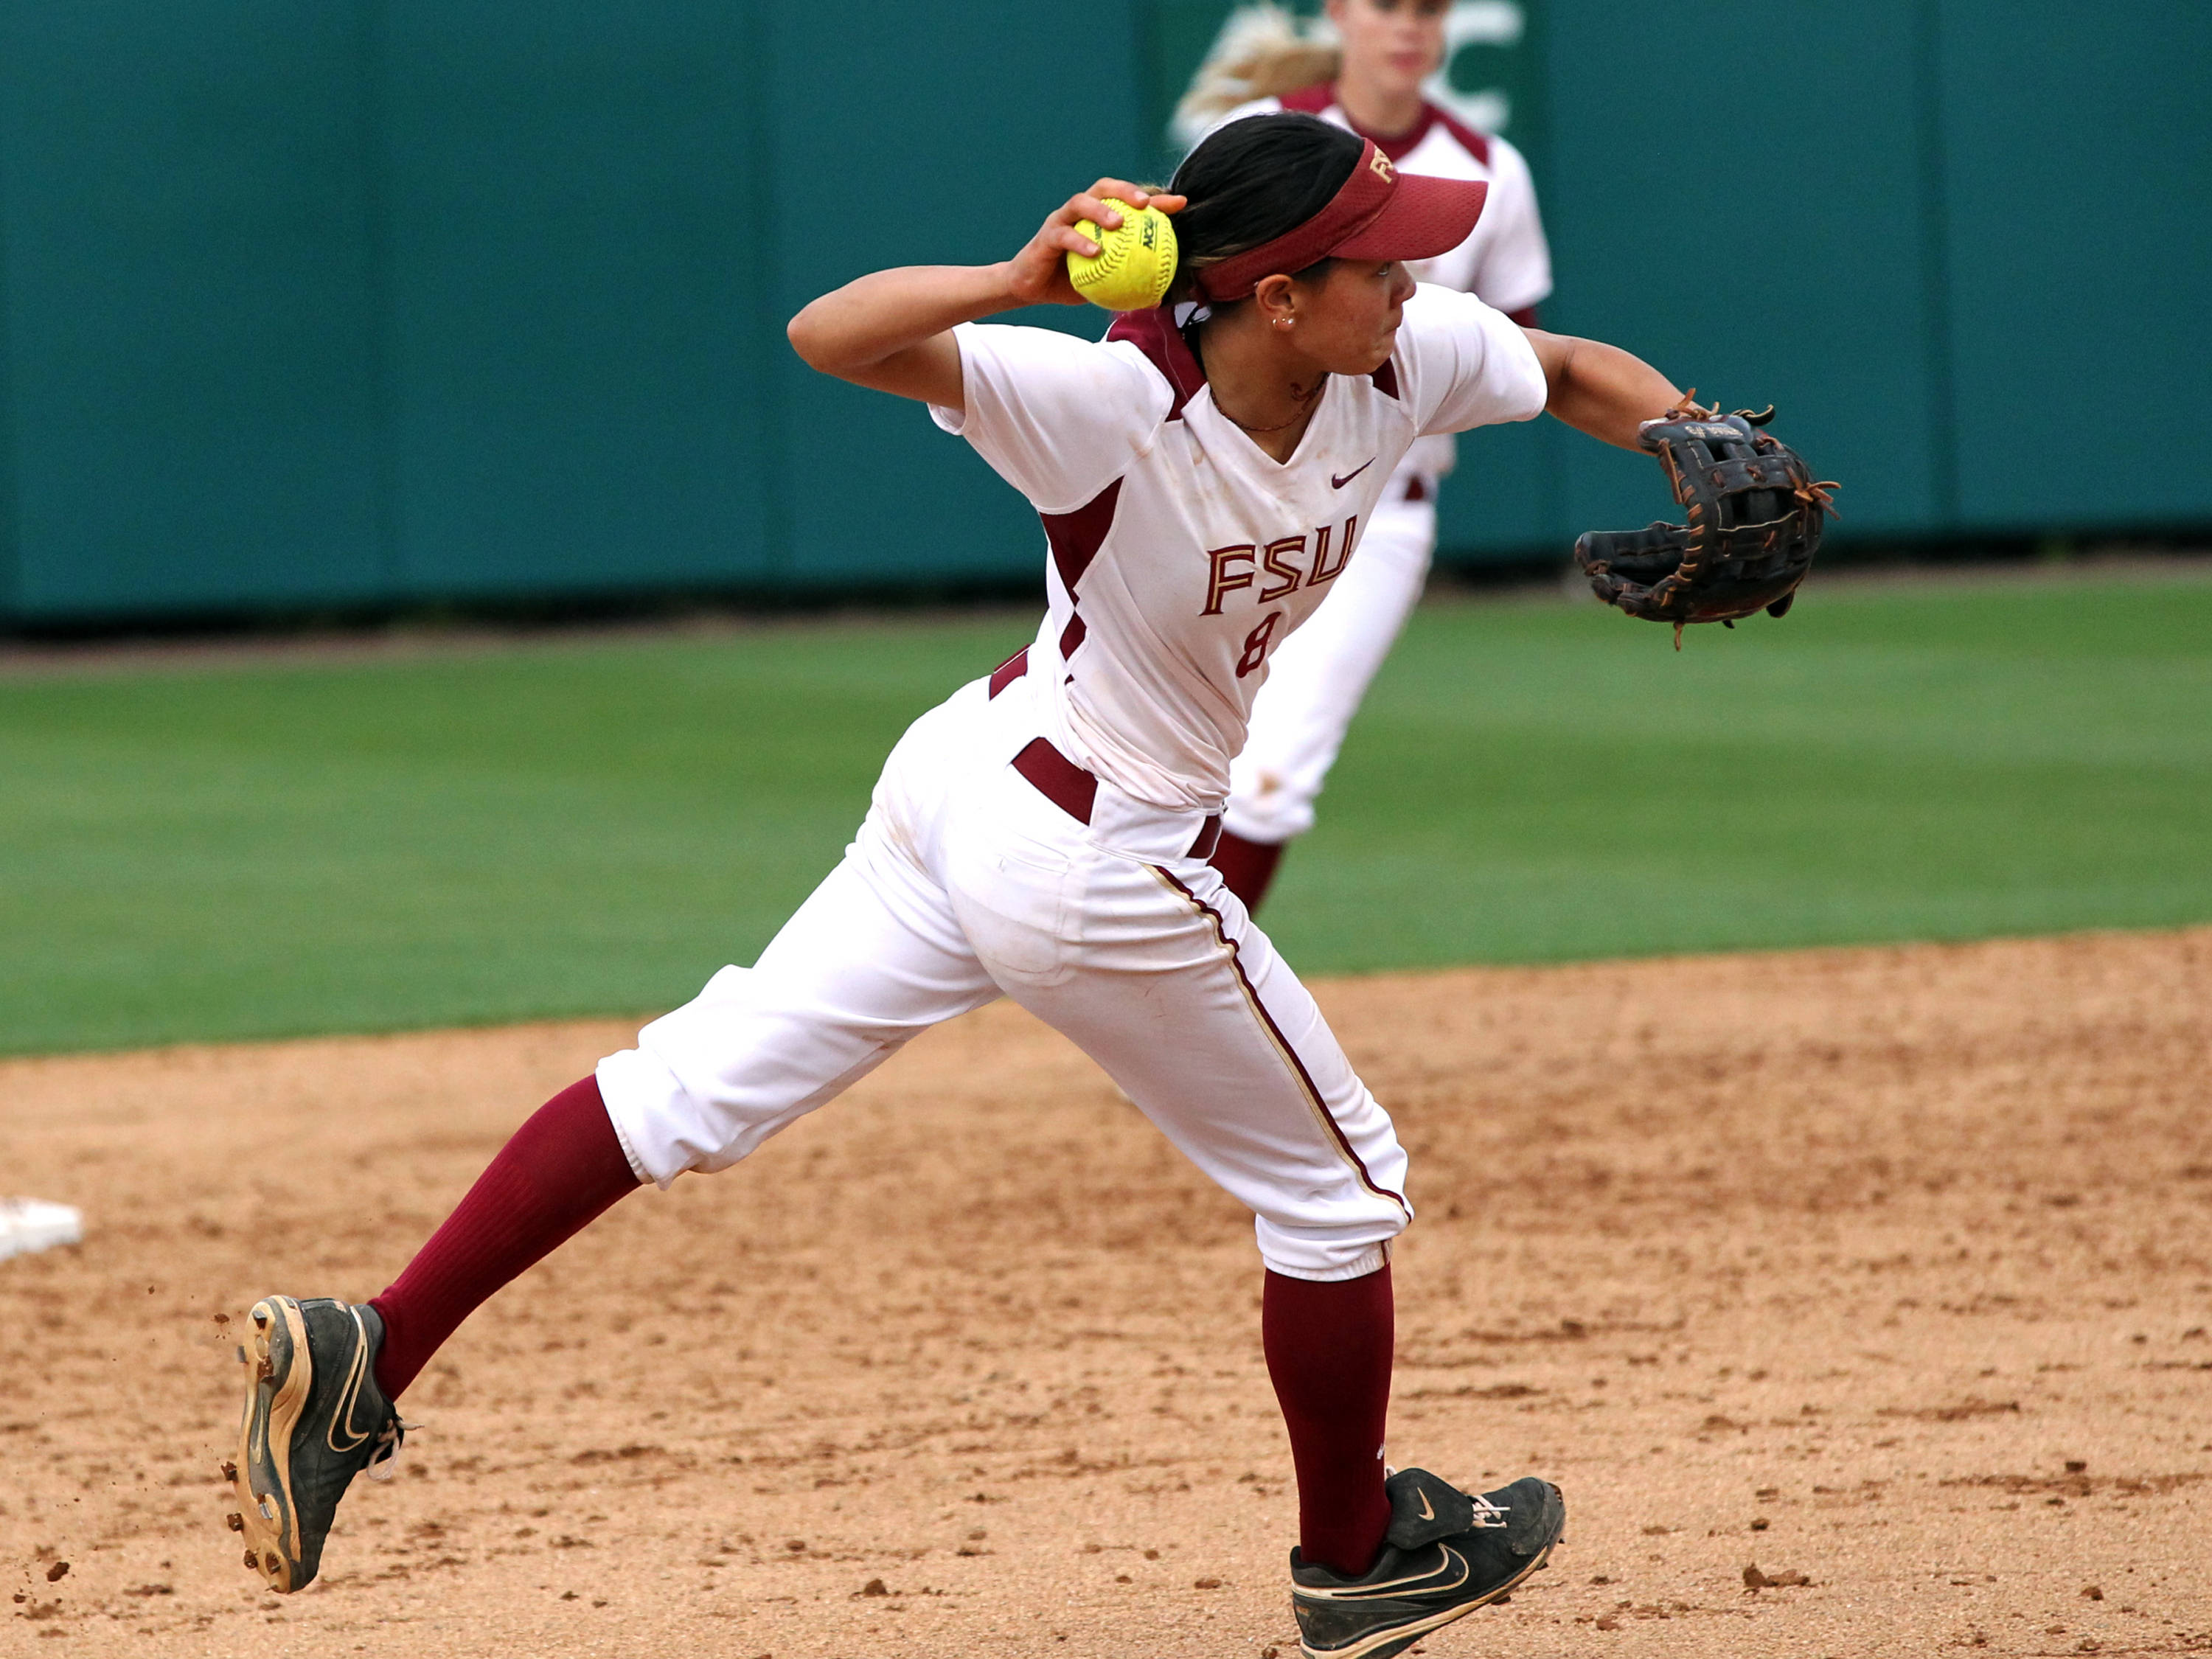 Courtney Senas, FSU VS NC State, ACC Championship Finals, Tallahassee, FL,  05/11/13 . (Photo by Steve Musco)